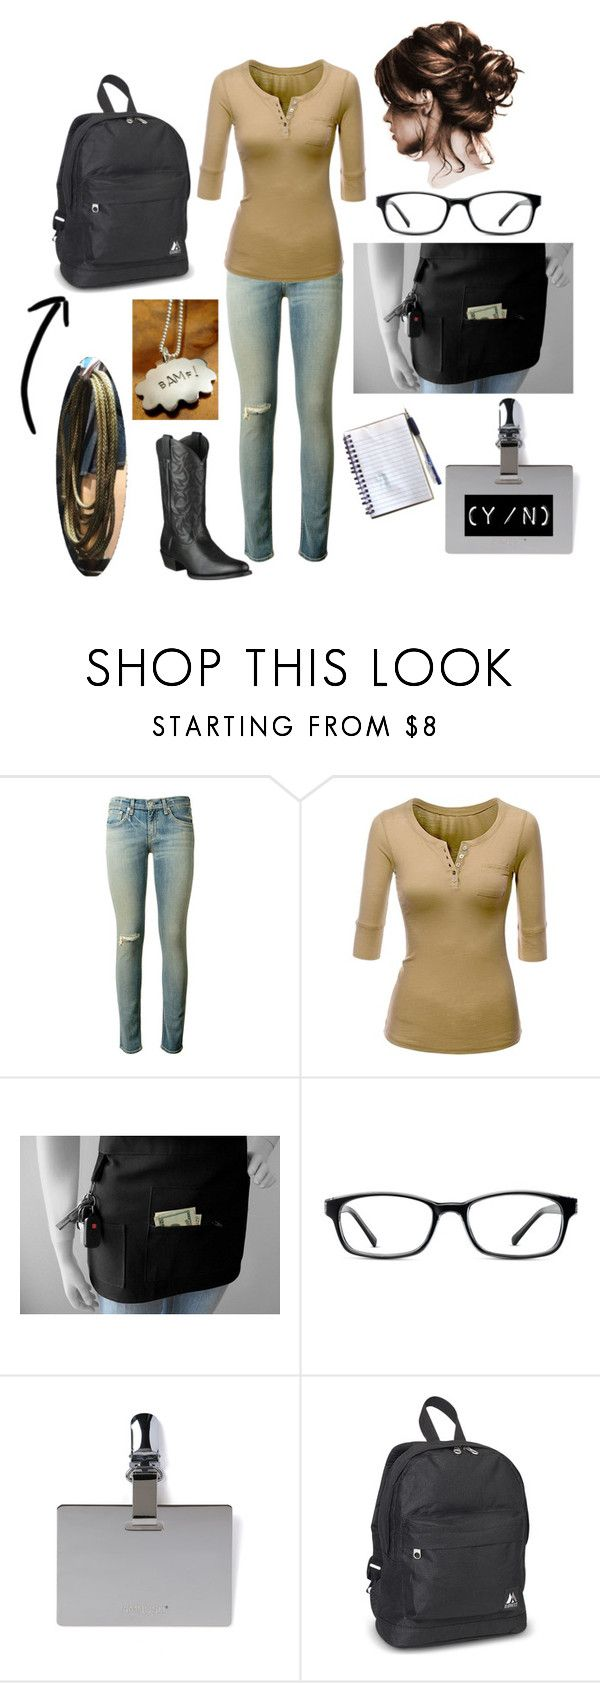 """""""Little McCree's Day Job"""" by qthawk on Polyvore featuring rag & bone, Doublju, Hostess, GlassesUSA and Everest"""